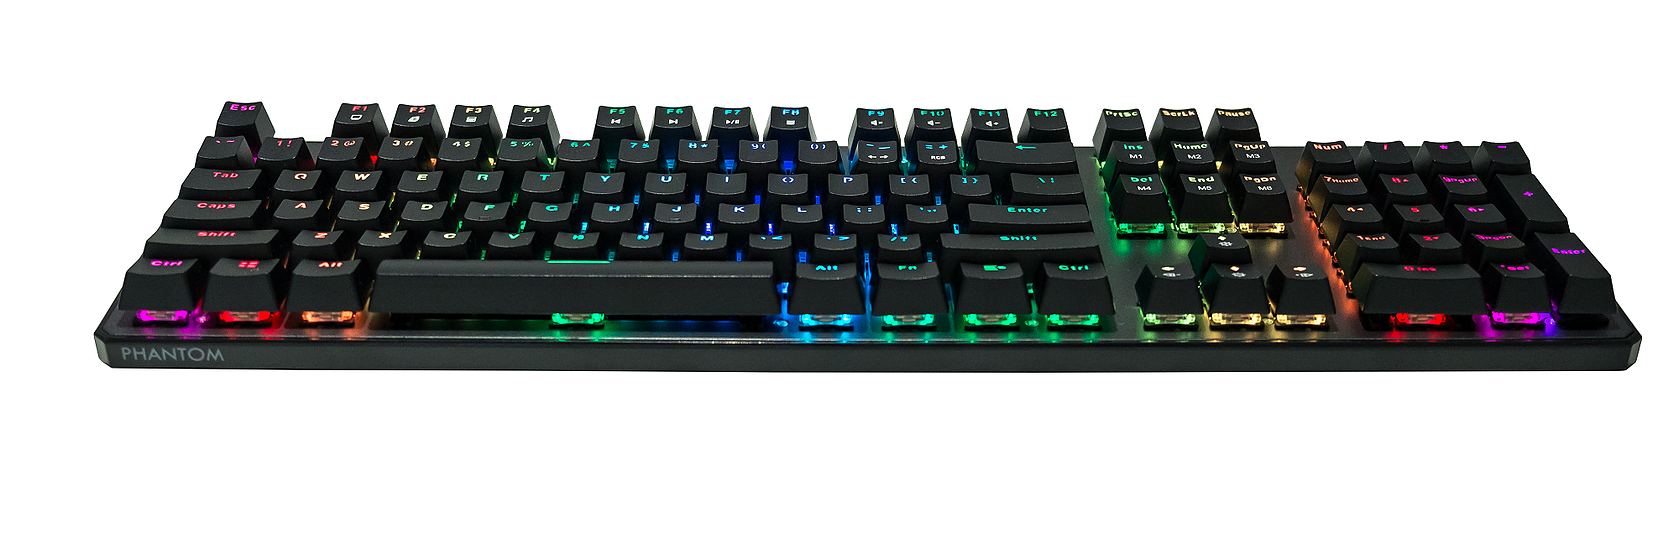 Tecware Wired Gaming Mechanical Keyboard Phantom 2020 with RGB Lighting, 104 Fullkey, Outemu Mechanical Switch (Outemu Blue / Outemu Brown / Outemu Red)